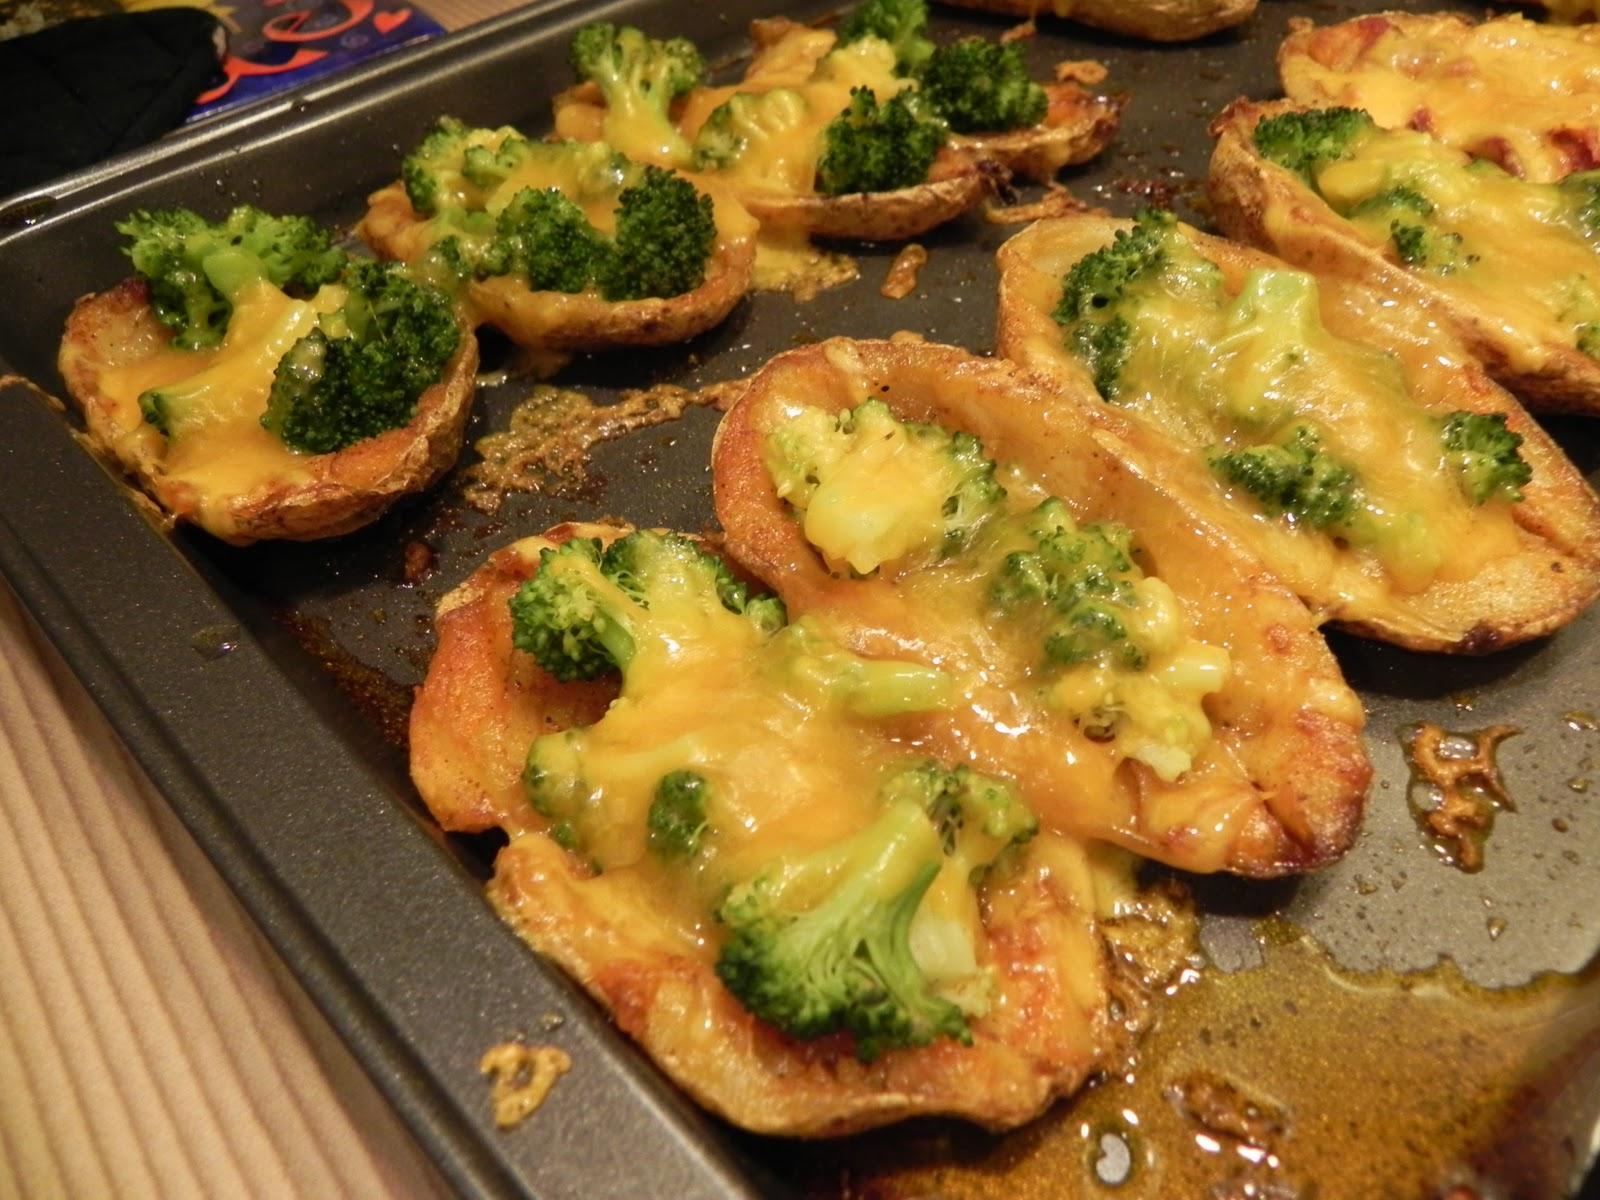 Broccoli and Cheddar Potato Skins | The Adirondack Chick